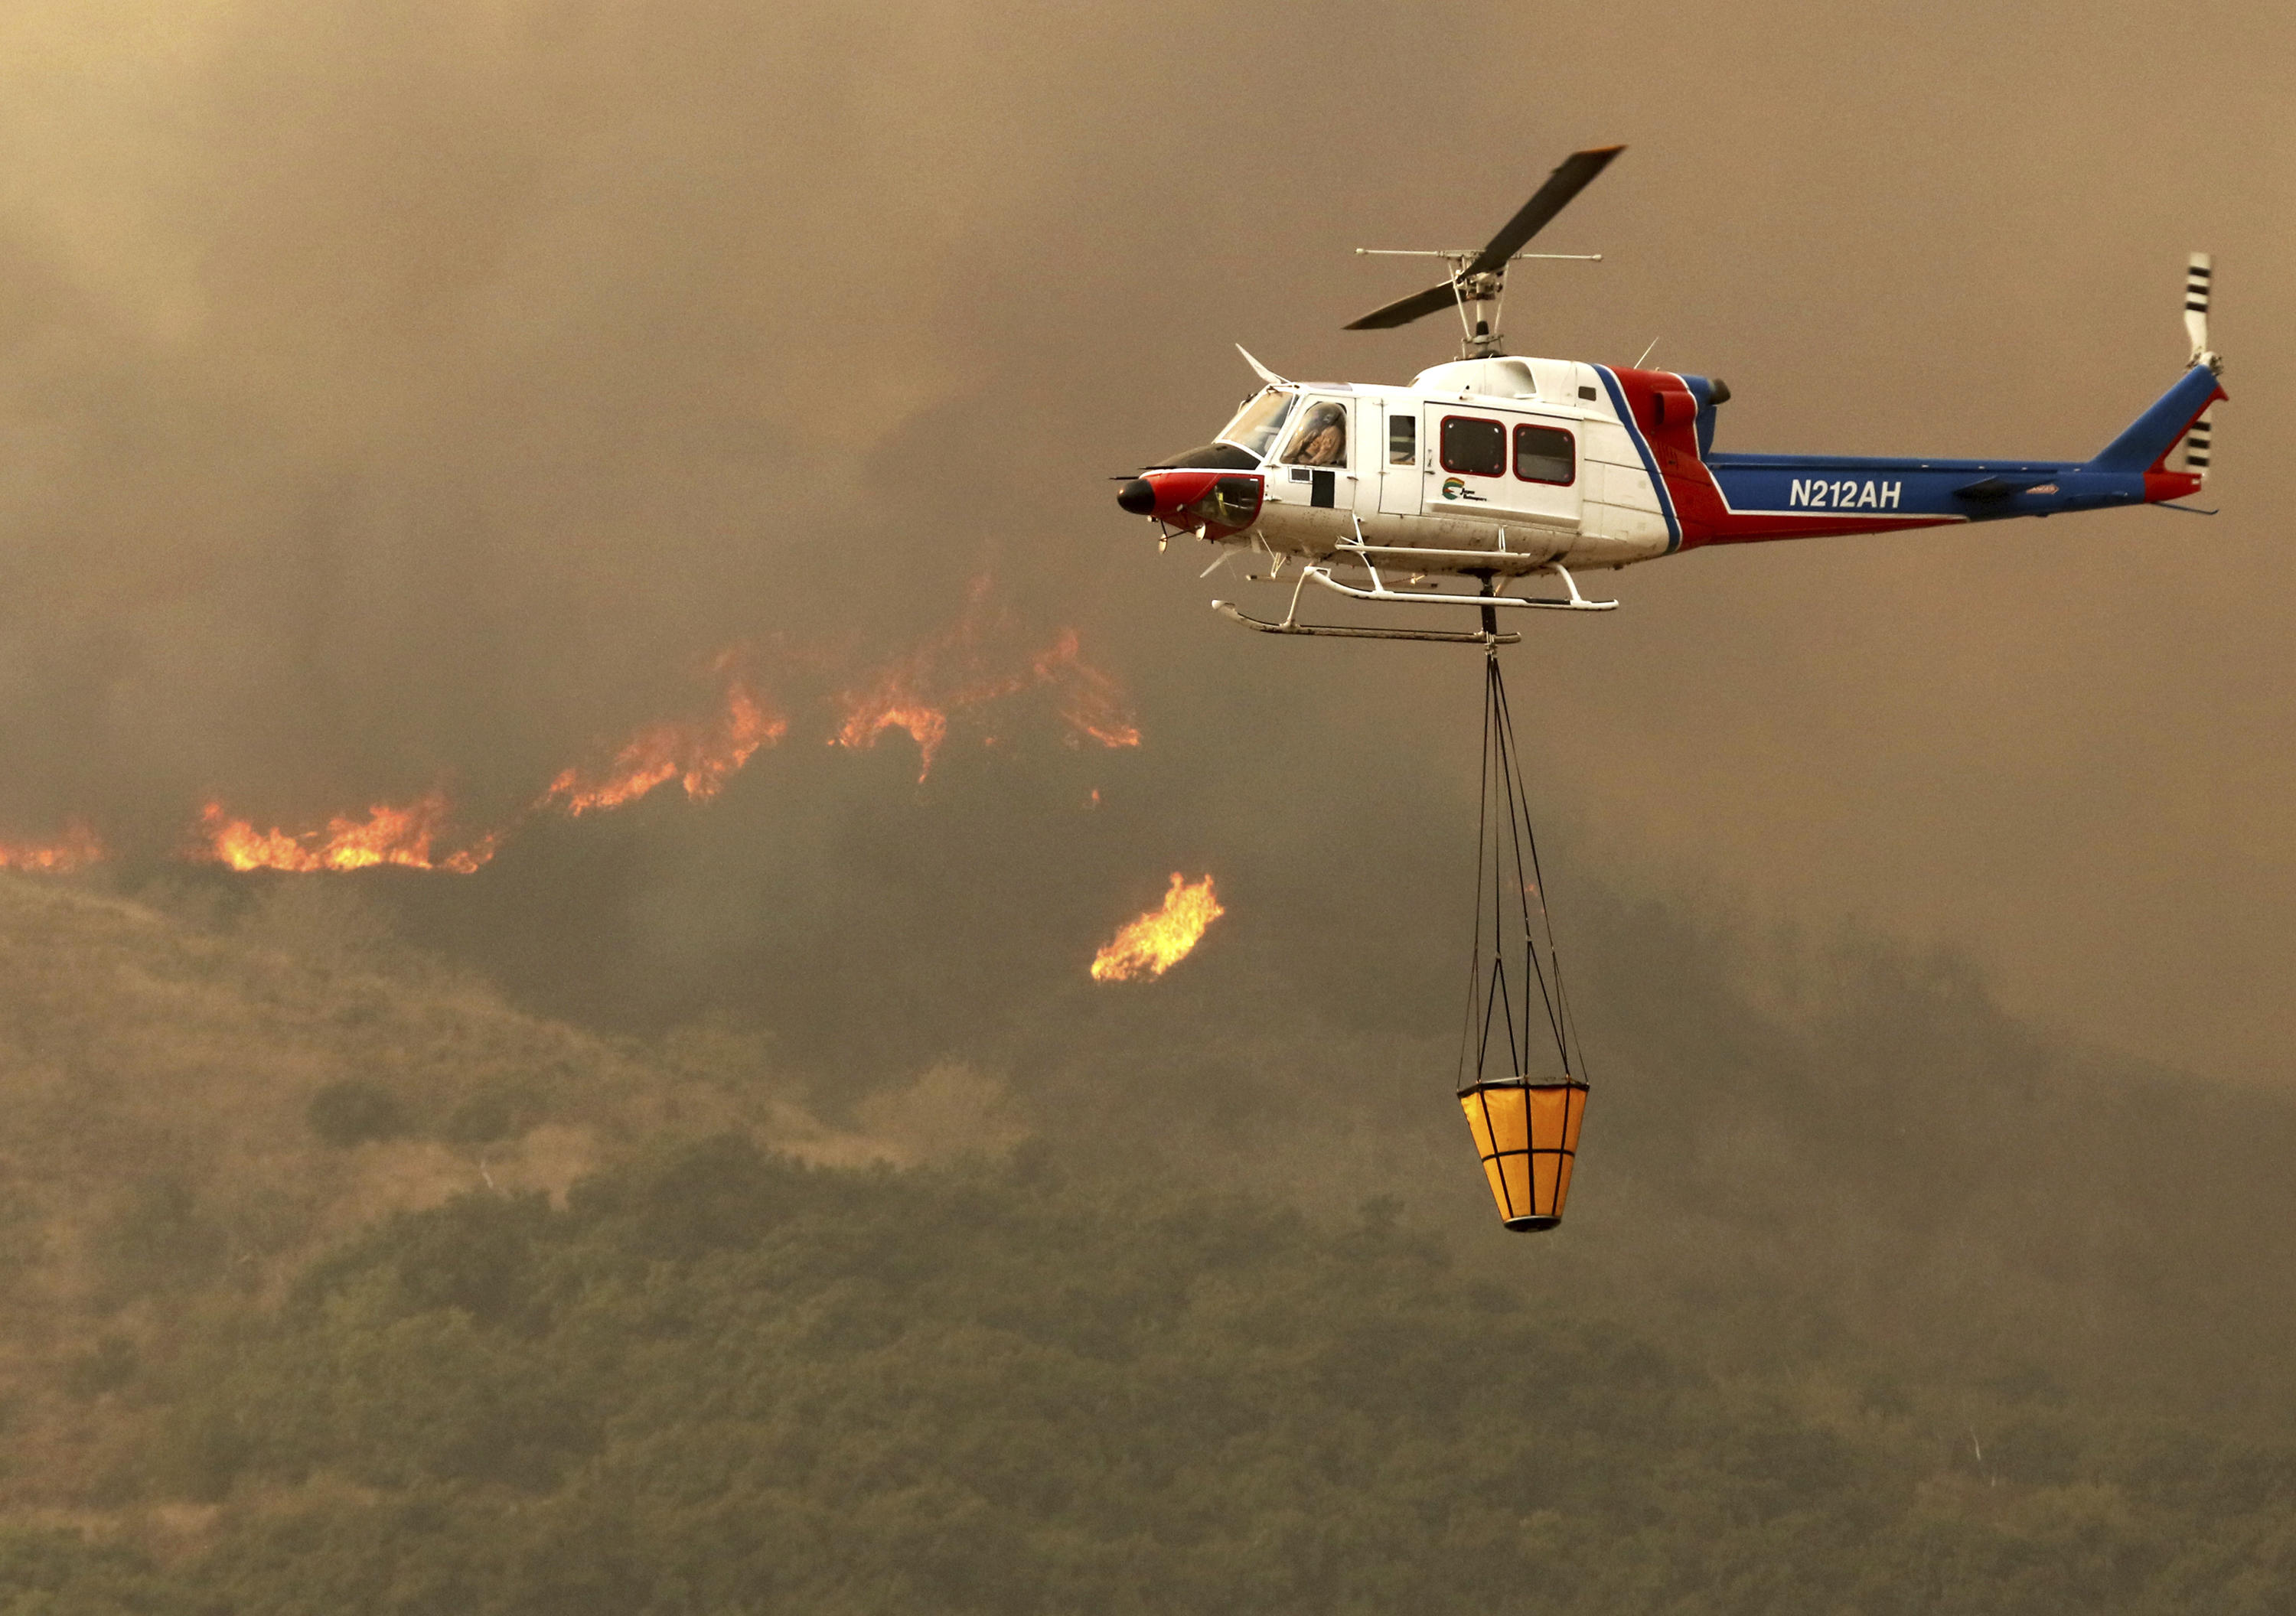 <div class='meta'><div class='origin-logo' data-origin='none'></div><span class='caption-text' data-credit='Daniel Dreifuss via AP'>A helicopter makes a water drop on hot spots after the Thomas fire swept through Ventura, Calif., Tuesday, Dec. 5, 2017.</span></div>